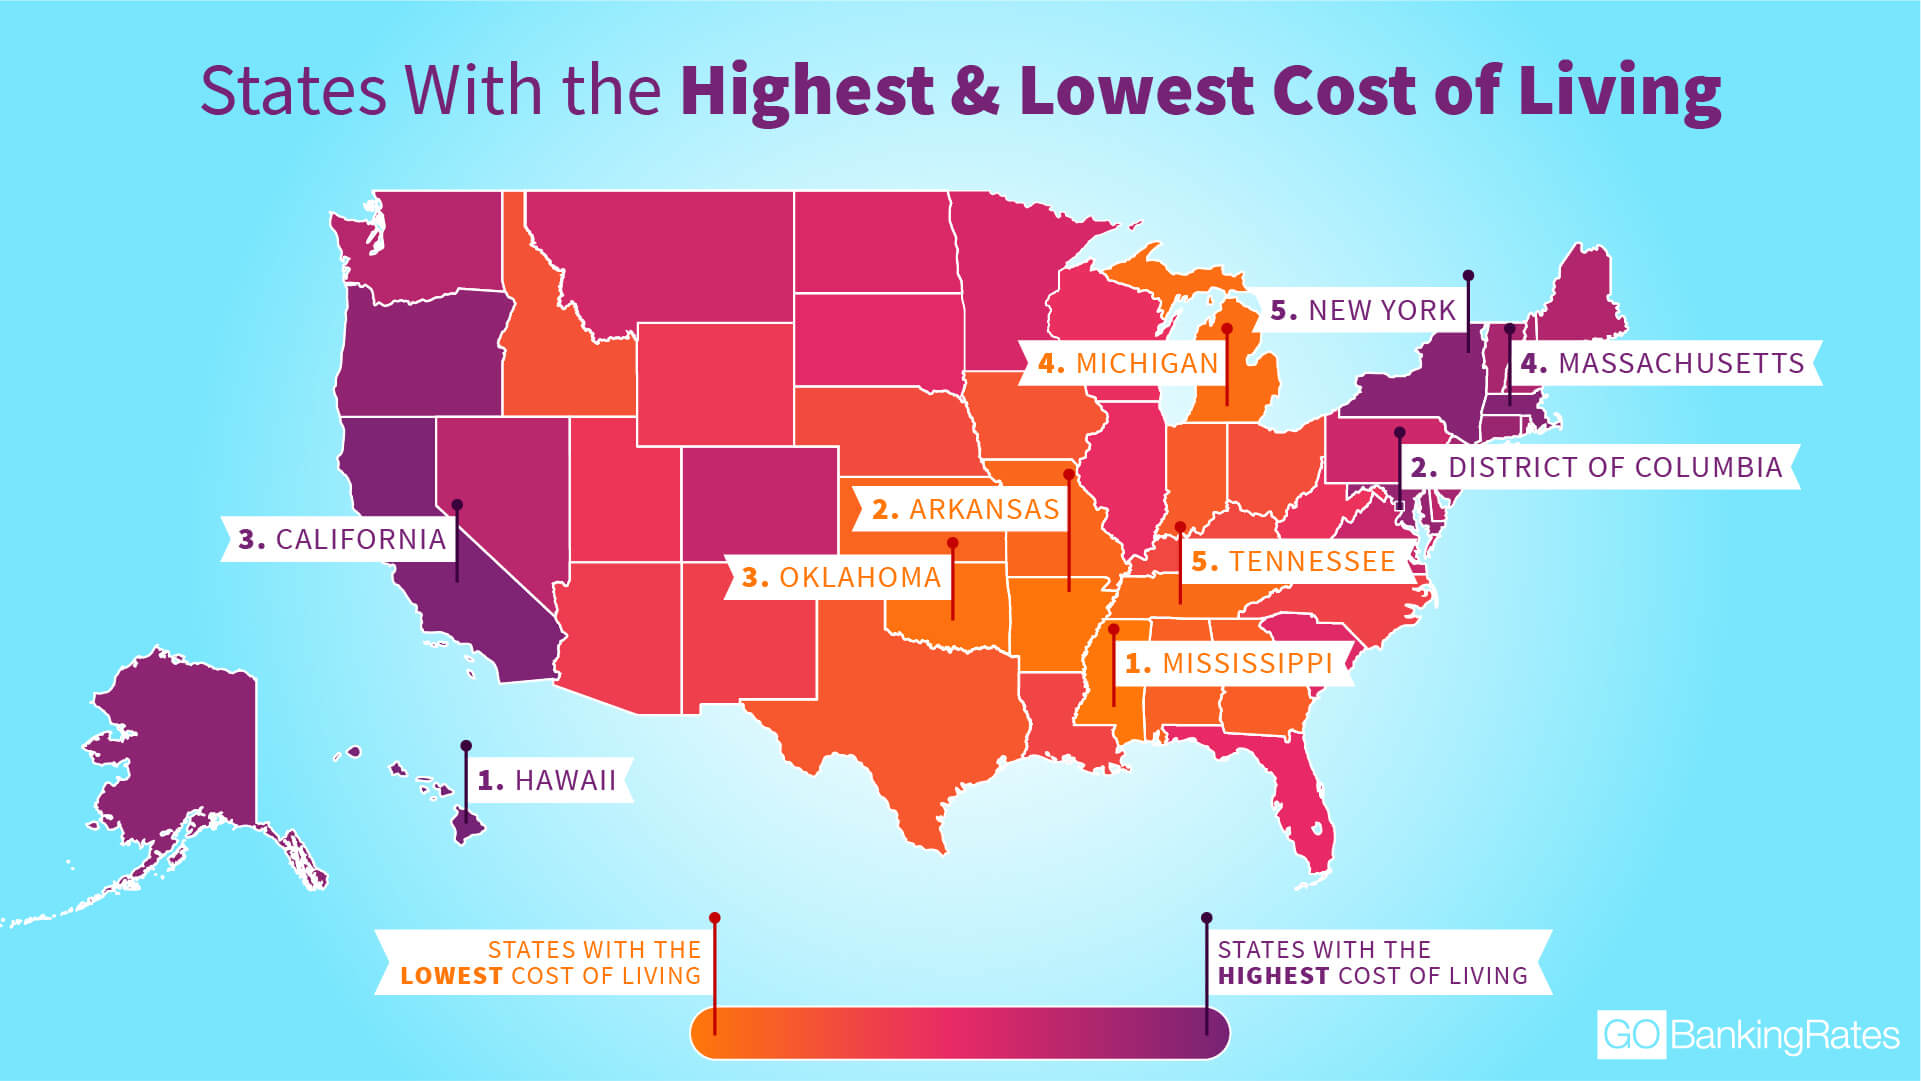 How the Cost of Living Varies in the United States